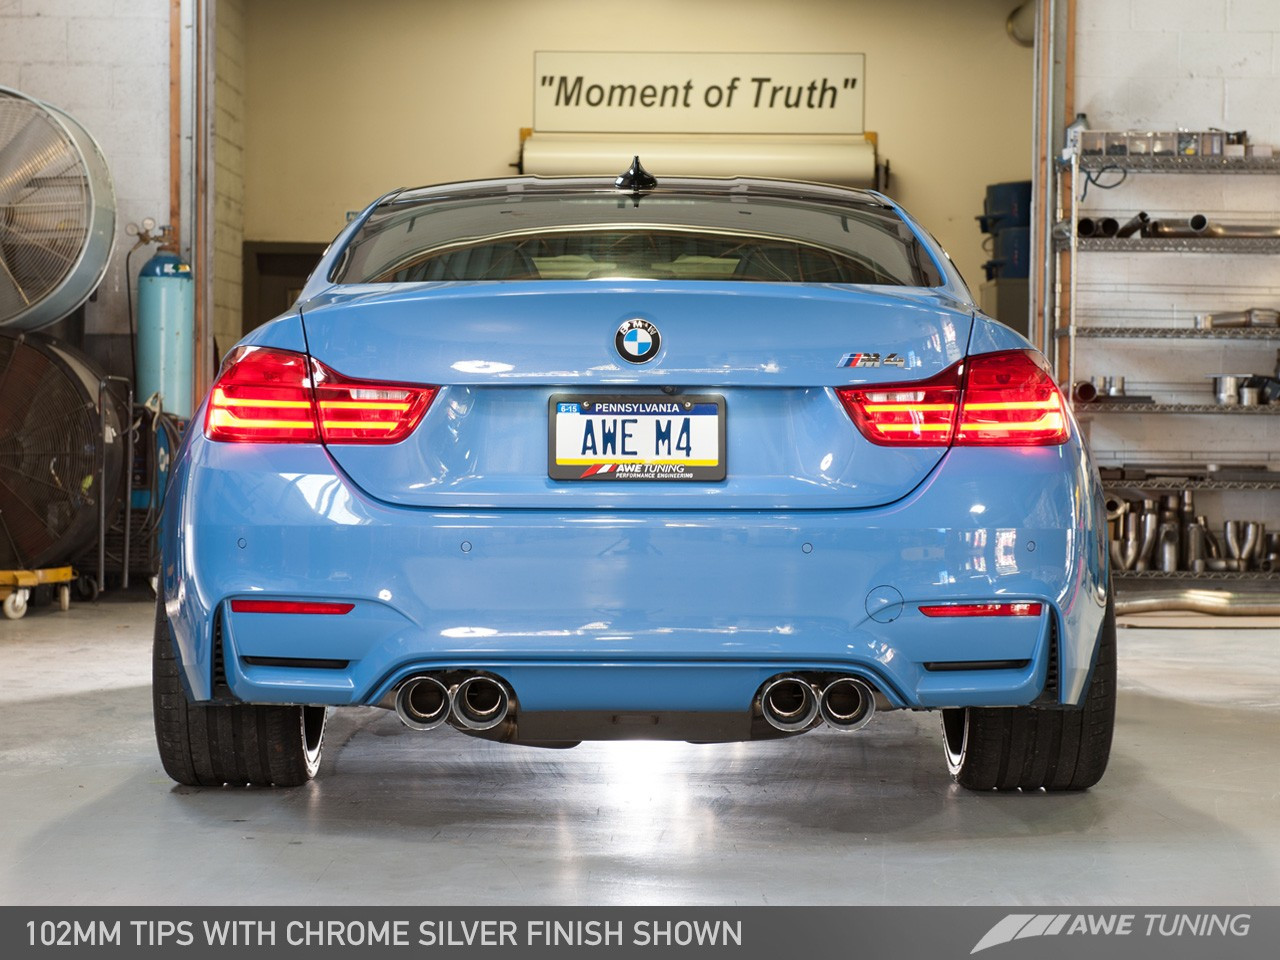 AWE Tuning BMW F8x M4 SwitchPath Exhaust System - 102mm Chrome Silver Tailpipes